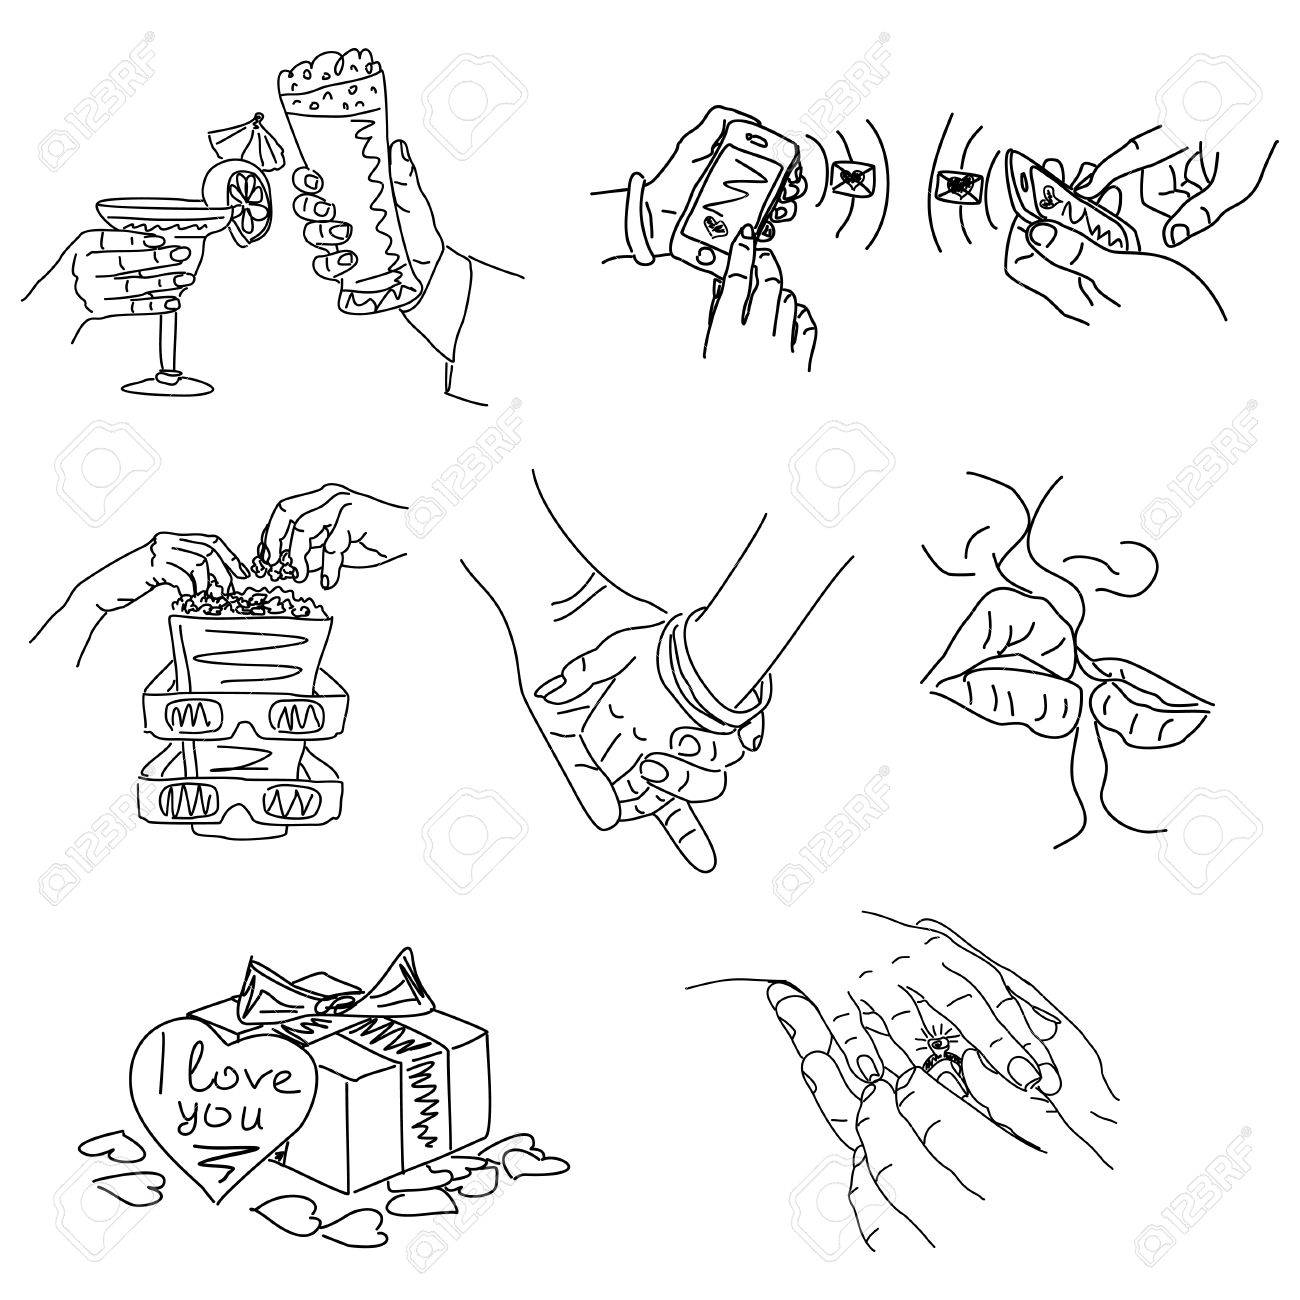 Love Story Set Of Vector Illustrations Of Love Cute Romantic Royalty Free Cliparts Vectors And Stock Illustration Image 70049225